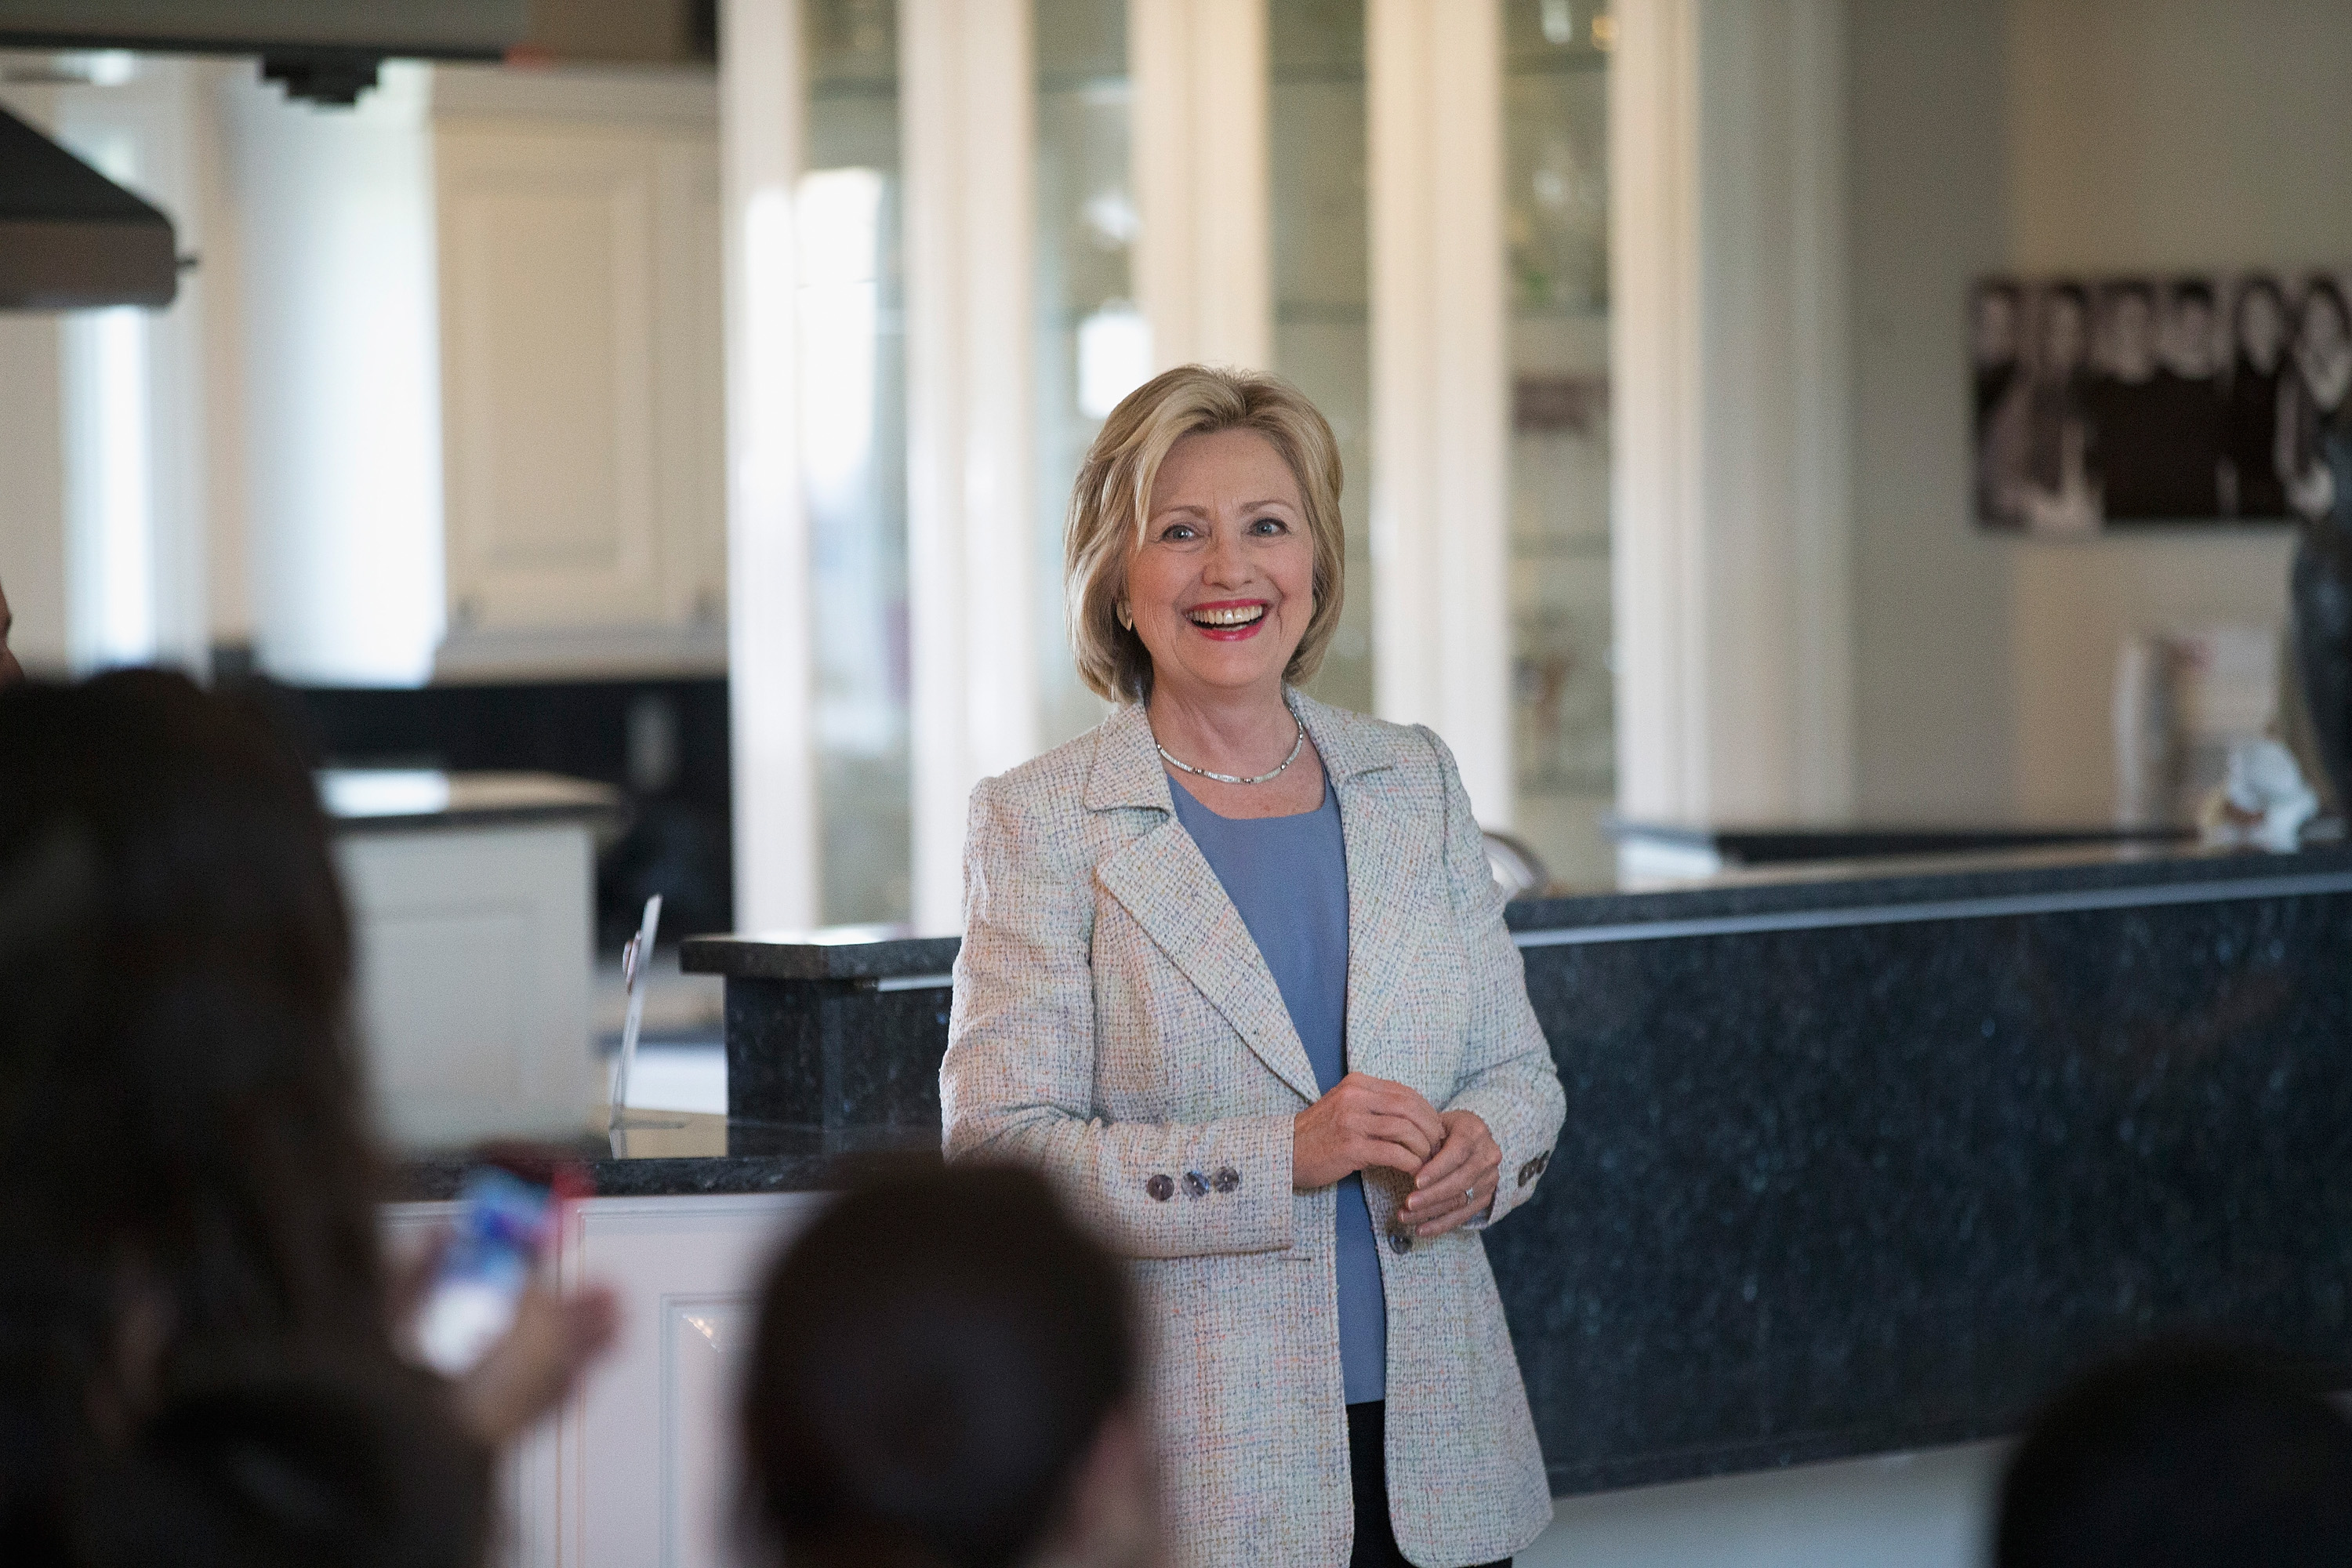 Democratic presidential hopeful and former Secretary of State Hillary Clinton waits to be introduced at a house party on July 26, 2015 in Carroll, Iowa.